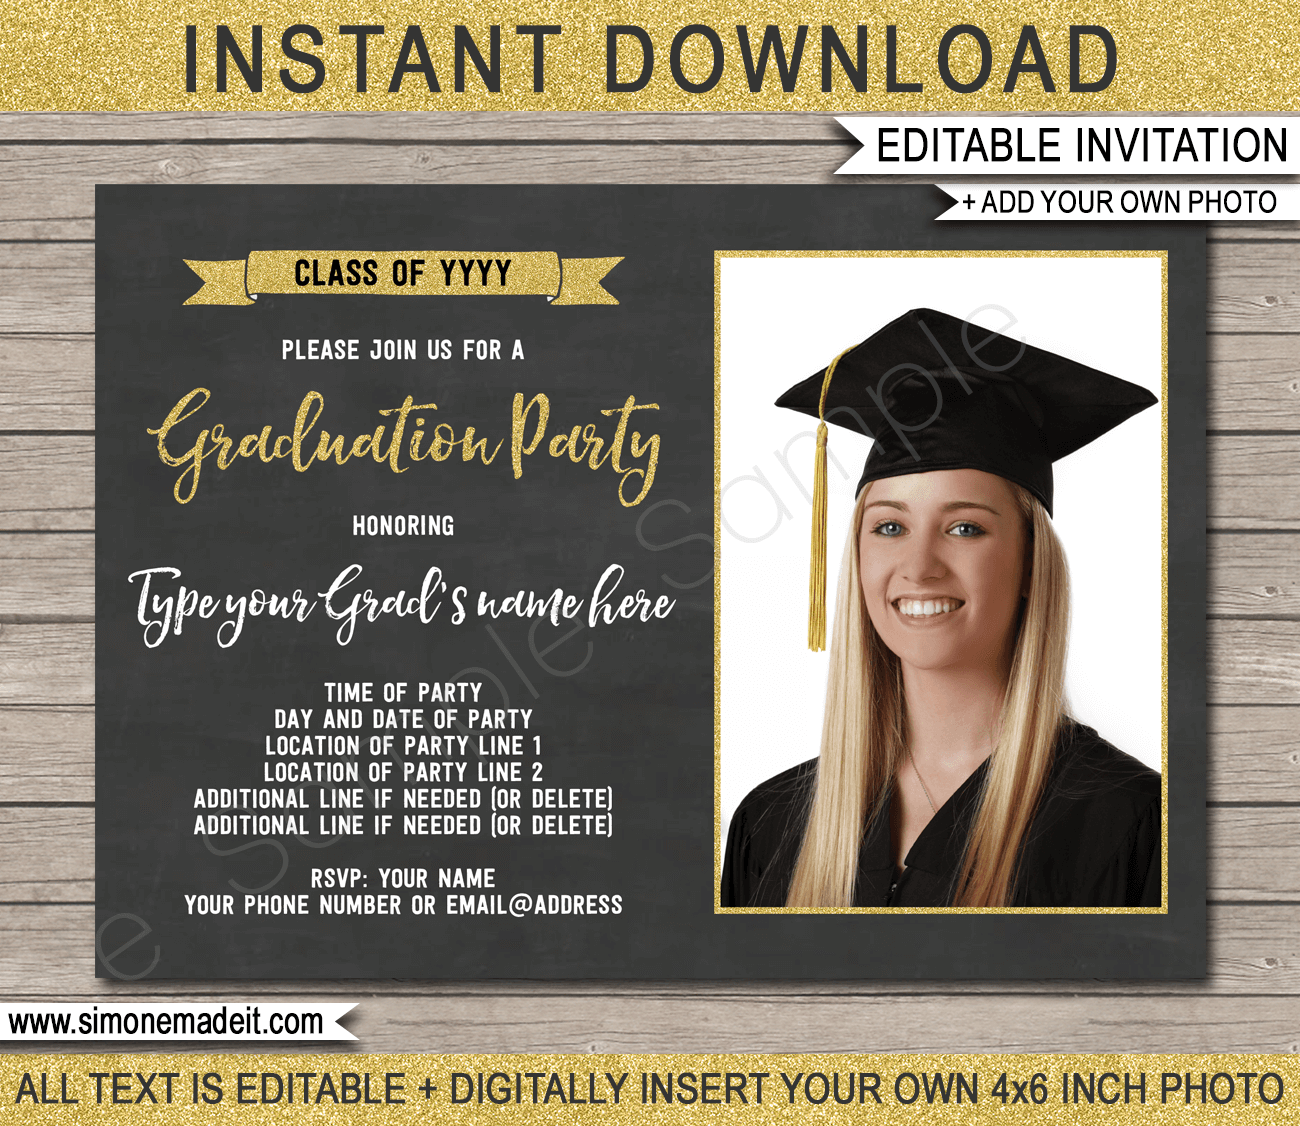 Printable Graduation Photo Invitation Template | Graduation Party Invite | Gold Glitter & Chalkboard | Editable & Printable Template | Instant Download via simonemadeit.com #graduationinvitation #gradinvite